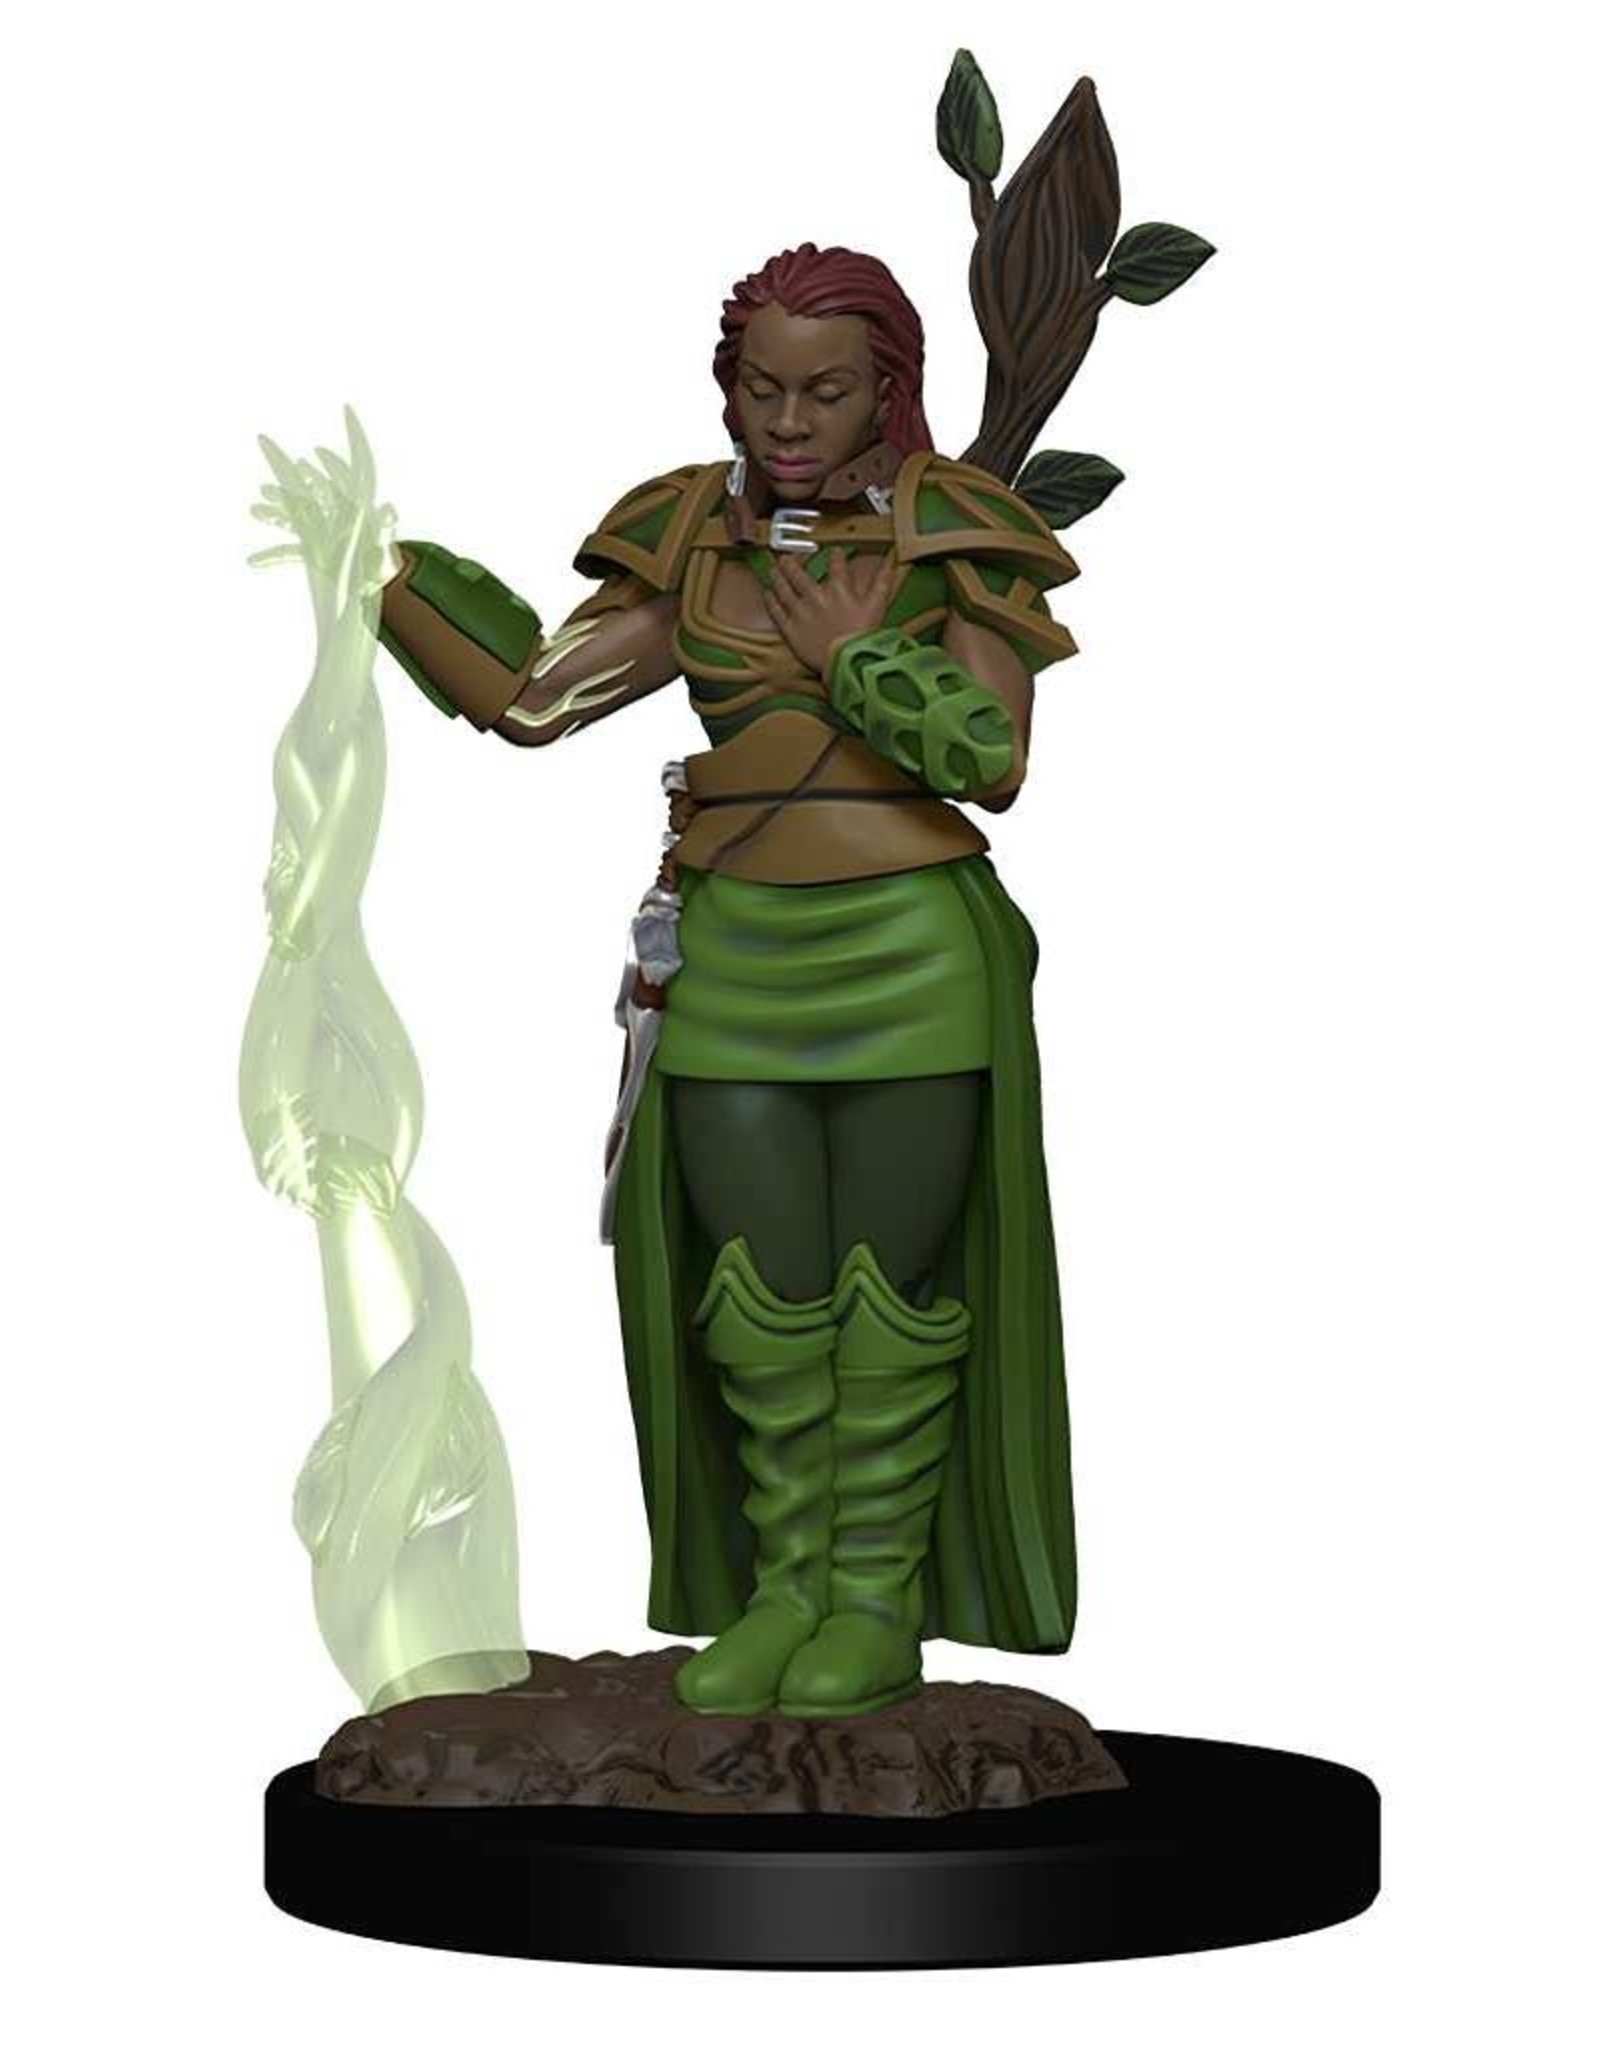 WizKids Dungeons & Dragons Icons of the Realms Premium Figures: W2 Human Female Druid